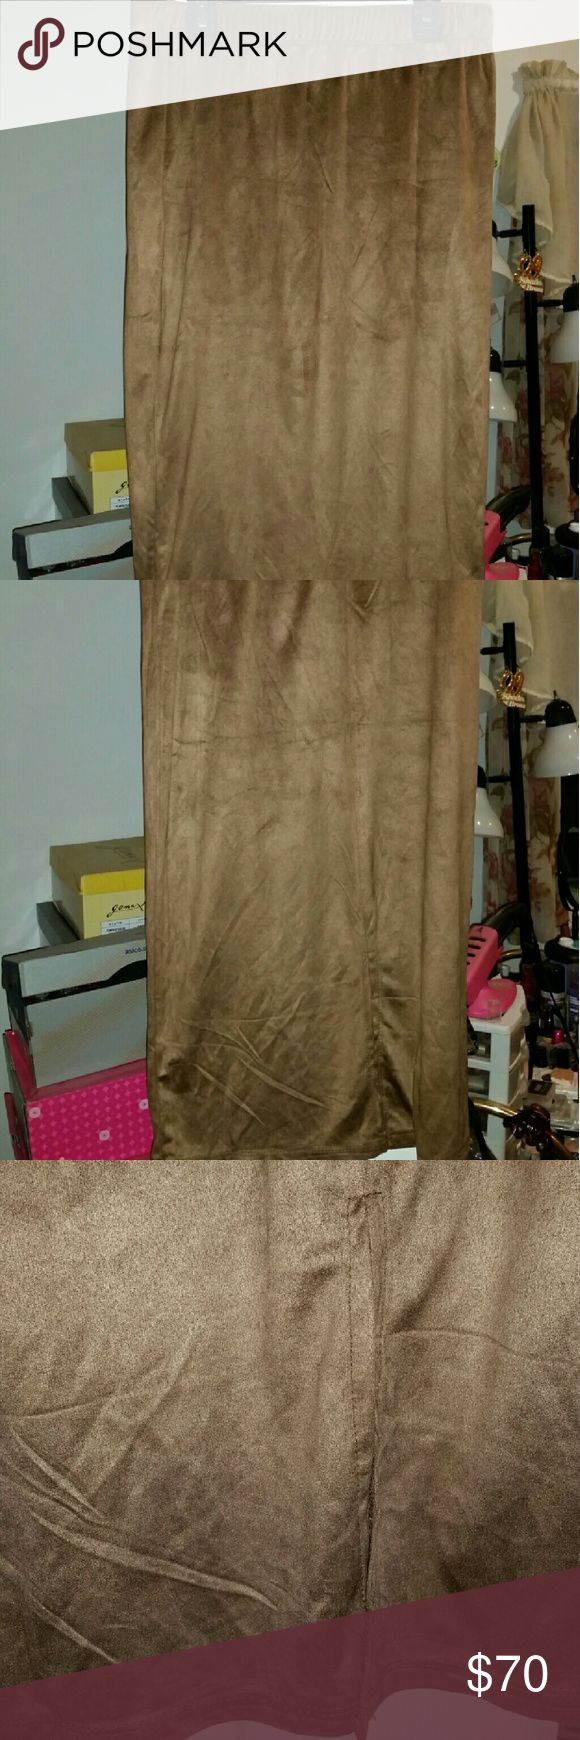 """100% AUTHENTIC BY LILLY GILACHI WANT MY LOOK SKIRT *100% AUTHENTIC SUEDE MIDI PENCIL SKIRT *BY: LILLY GILACHI OF SHAHS OF SUNSET *BRAND: WANT MY LOOK *COLOR: TOBACCO *STYLE: #505732 *SZ: LARGE *SUEDE  *MEASUREMENTS: -WAIST: 14"""" -LENGTH: 29""""(TOP OF WAIST TO BOTTOM) -SLIT: 8""""  *ABSOLUTELY STUNNING *GORGEOUS SKIRT Want My Look Skirts Midi"""